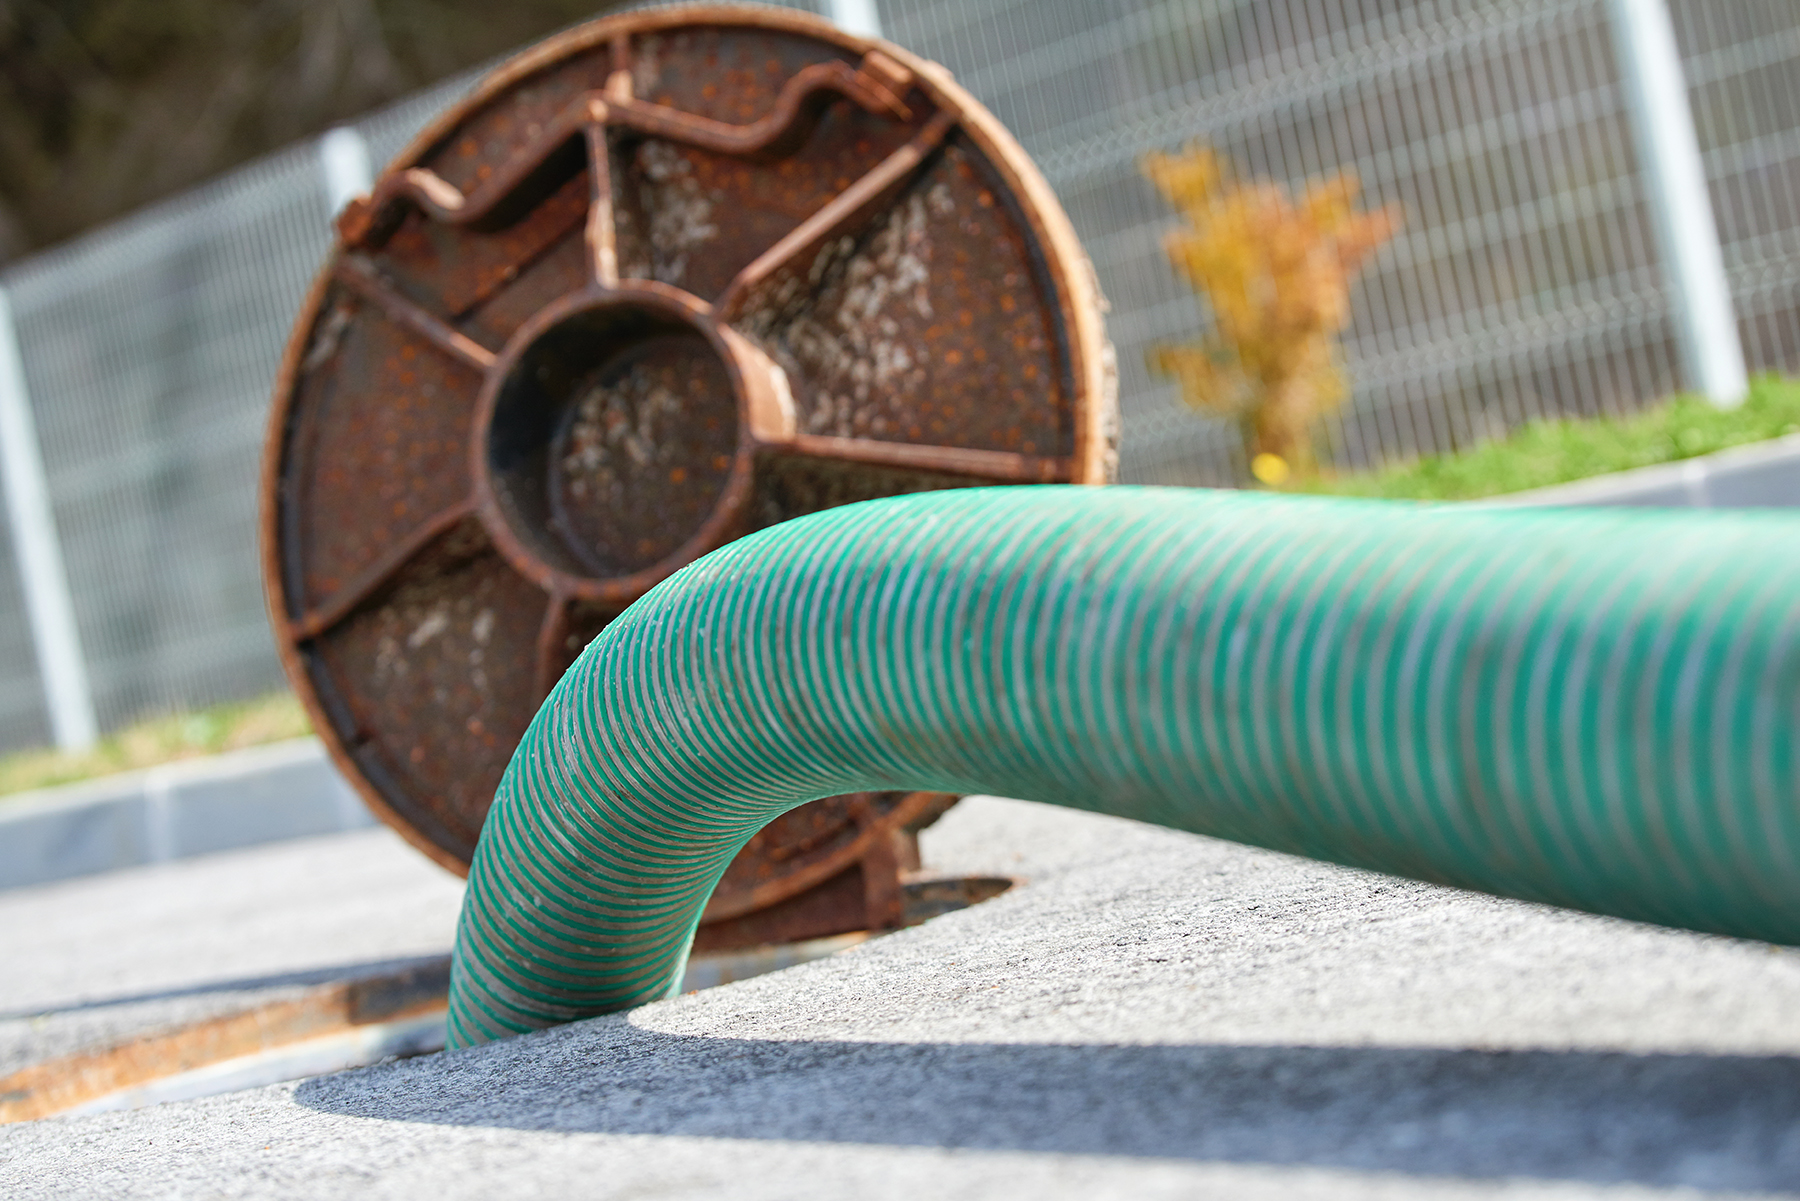 Commercial sewer and drain cleaning by Rapid Flush